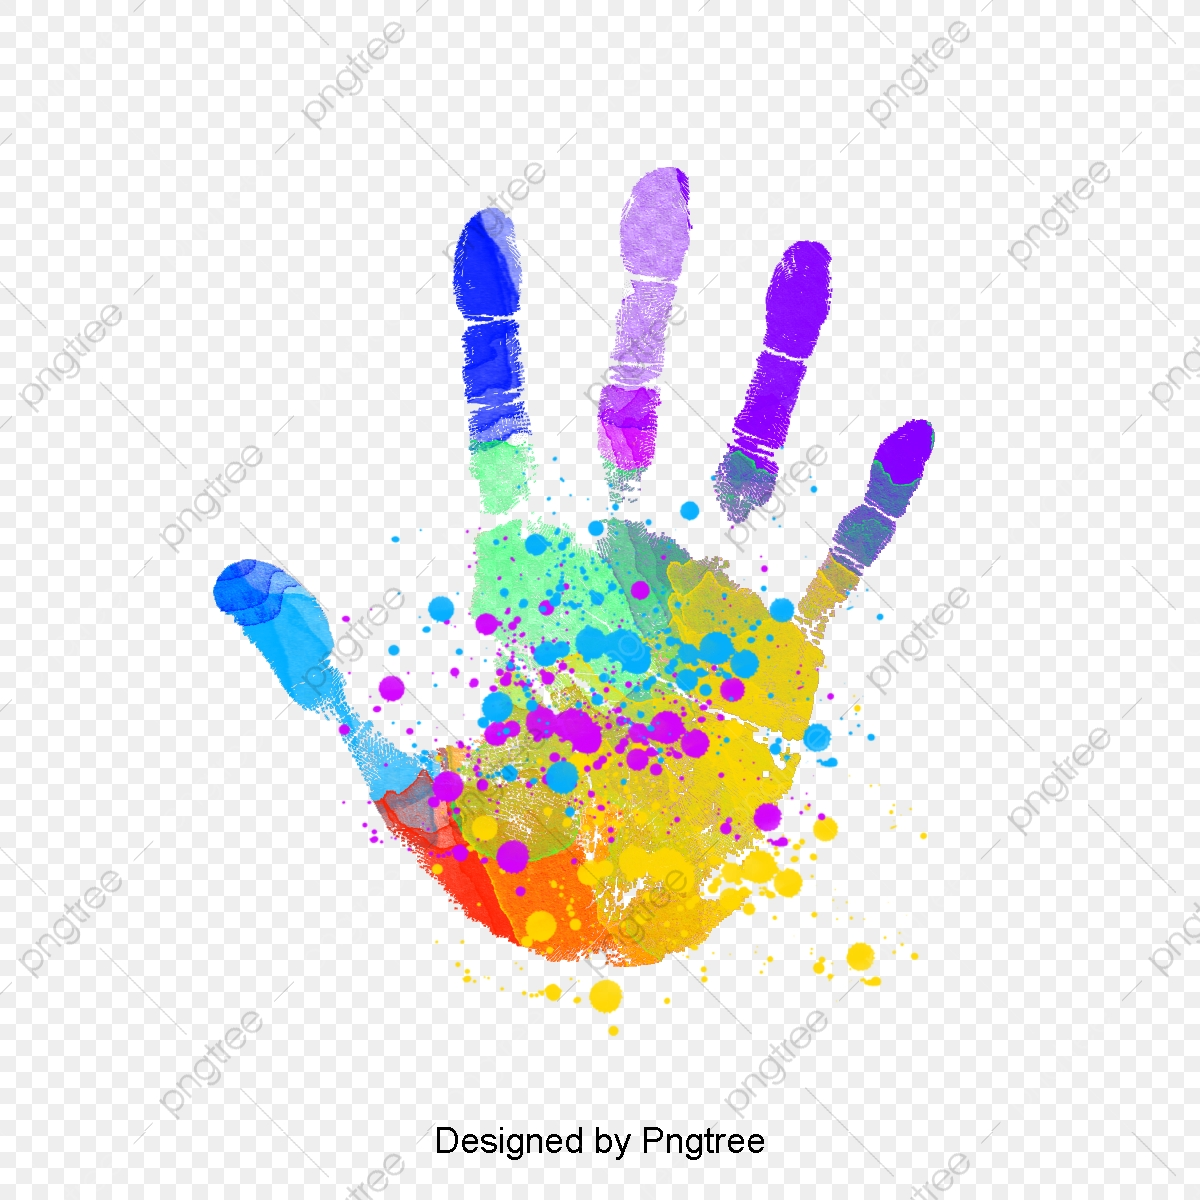 Handprint, Graffiti, Color Splash PNG Transparent Clipart